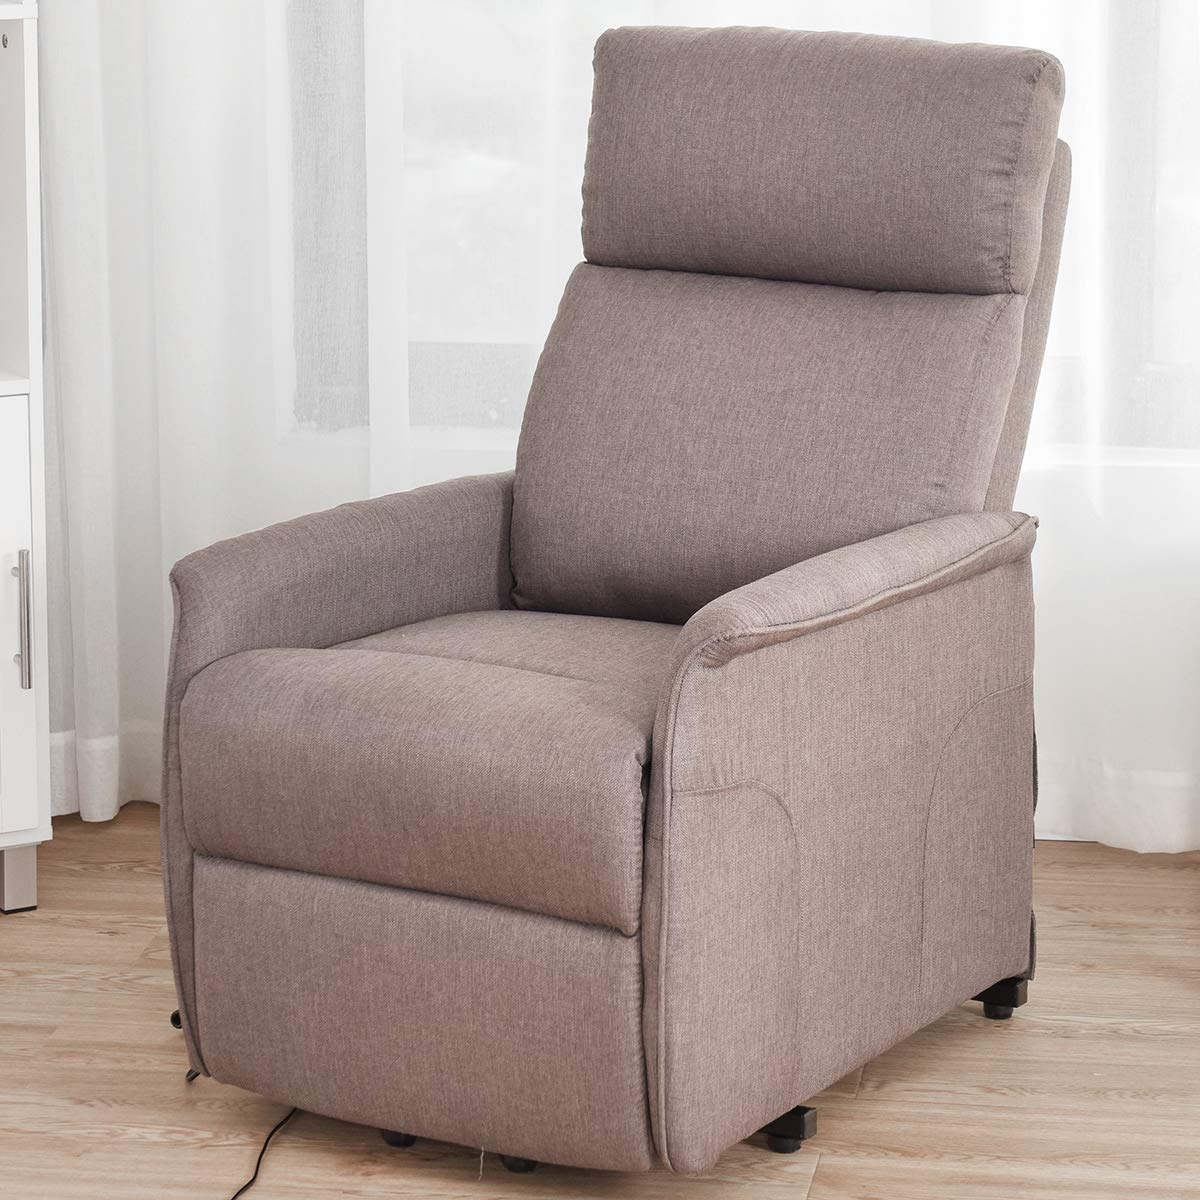 Giantex Recliner Sofa Chair Power Lift Recliner Fabric Padded Seat,Stable Steel Frame W Remote Adjustable Degree Chair Back for Living Room, Bedroom Reclining Electric Chair